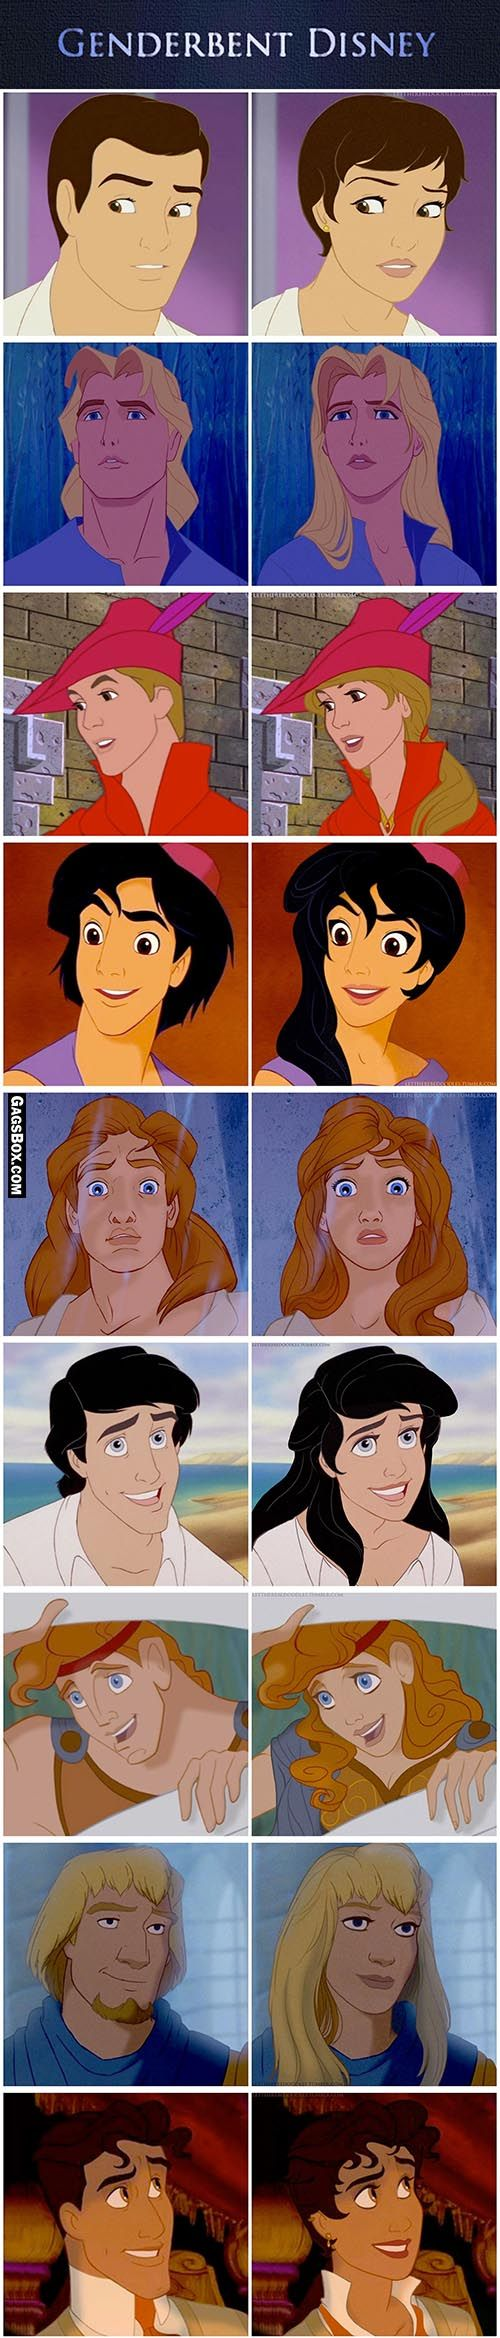 Disney Characters Male To Females.